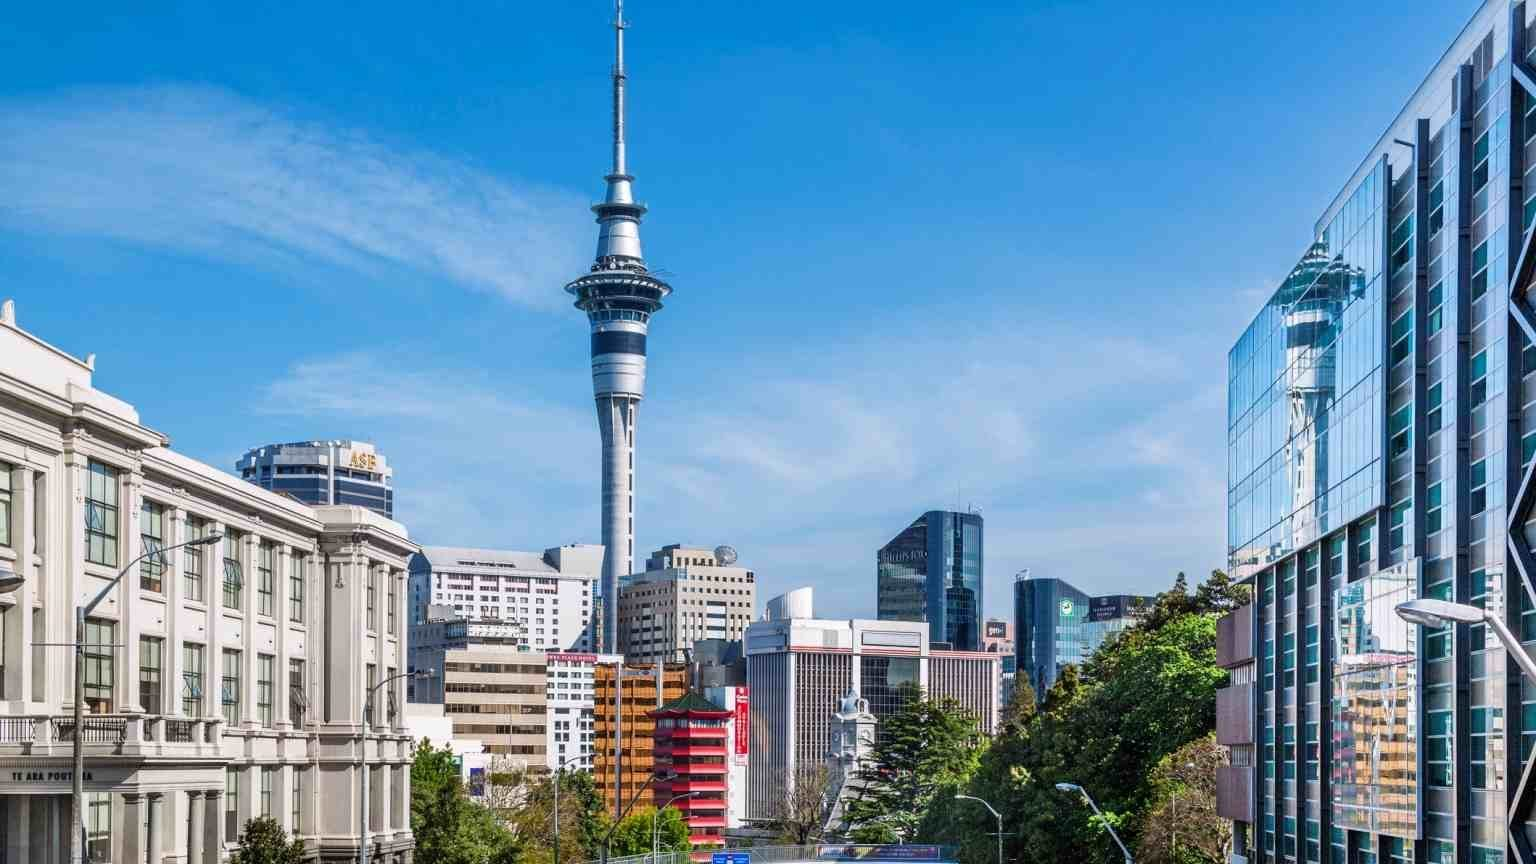 New Zealand, North Island, Auckland, Wellesley Street East with Auckland University of Technology and University of Auckland, dominated by the 328 metre Sky Tower, the tallest free-standing structure in the Southern Hemisphere (New Zealand, North Isla